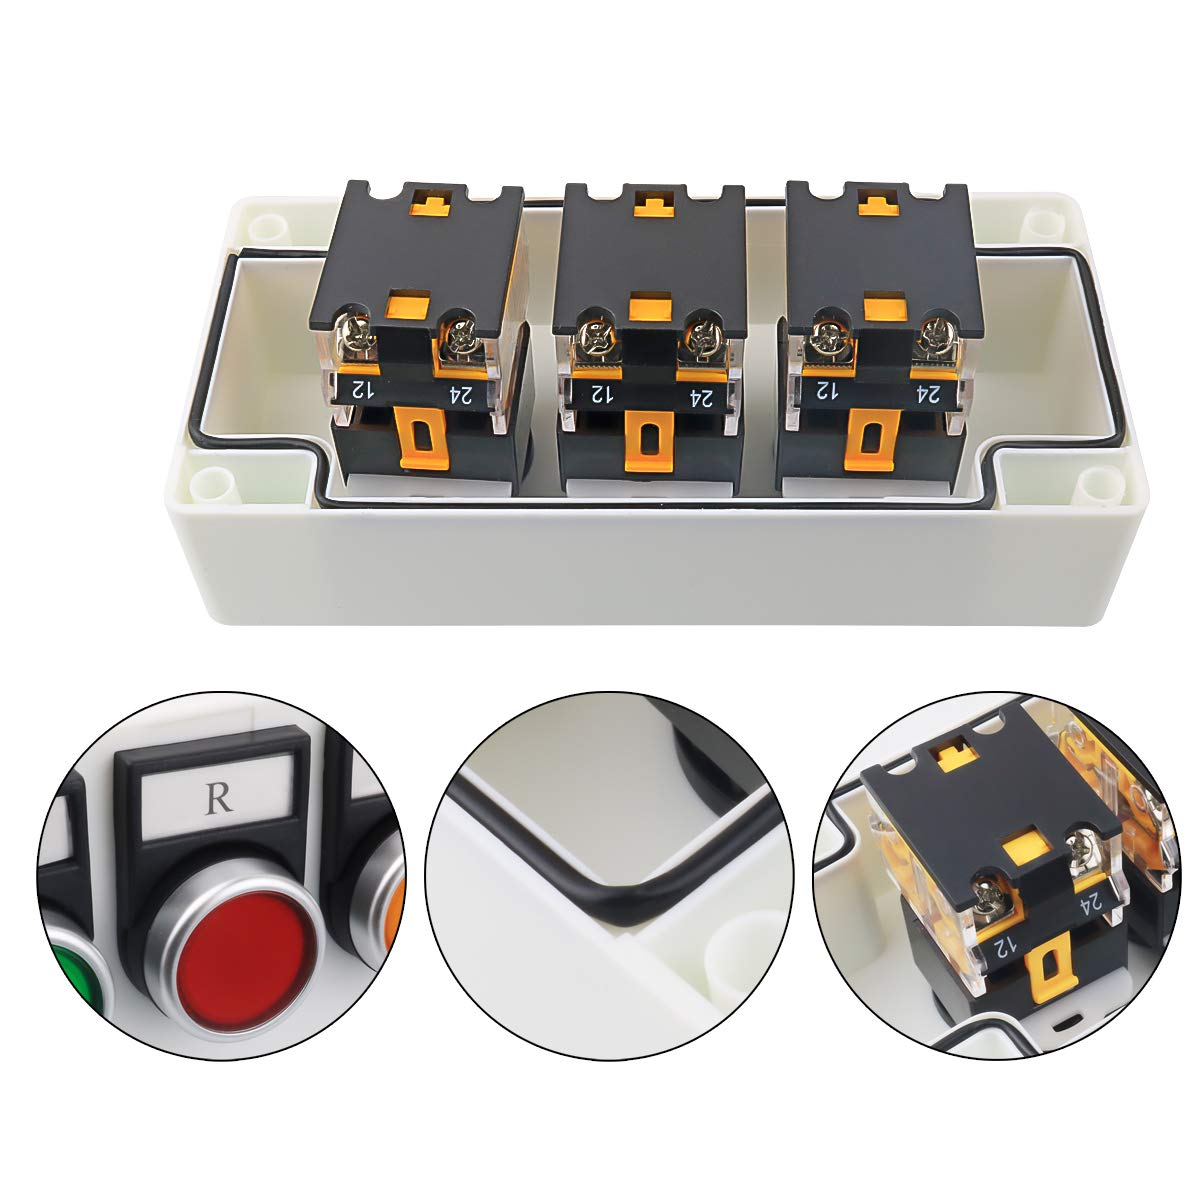 Nxtop Momentary Push Button Switch Pushbutton Switches Station LA38-11 Box 22mm 10A 440V 1NO 1NC Red Yellow Green Sign